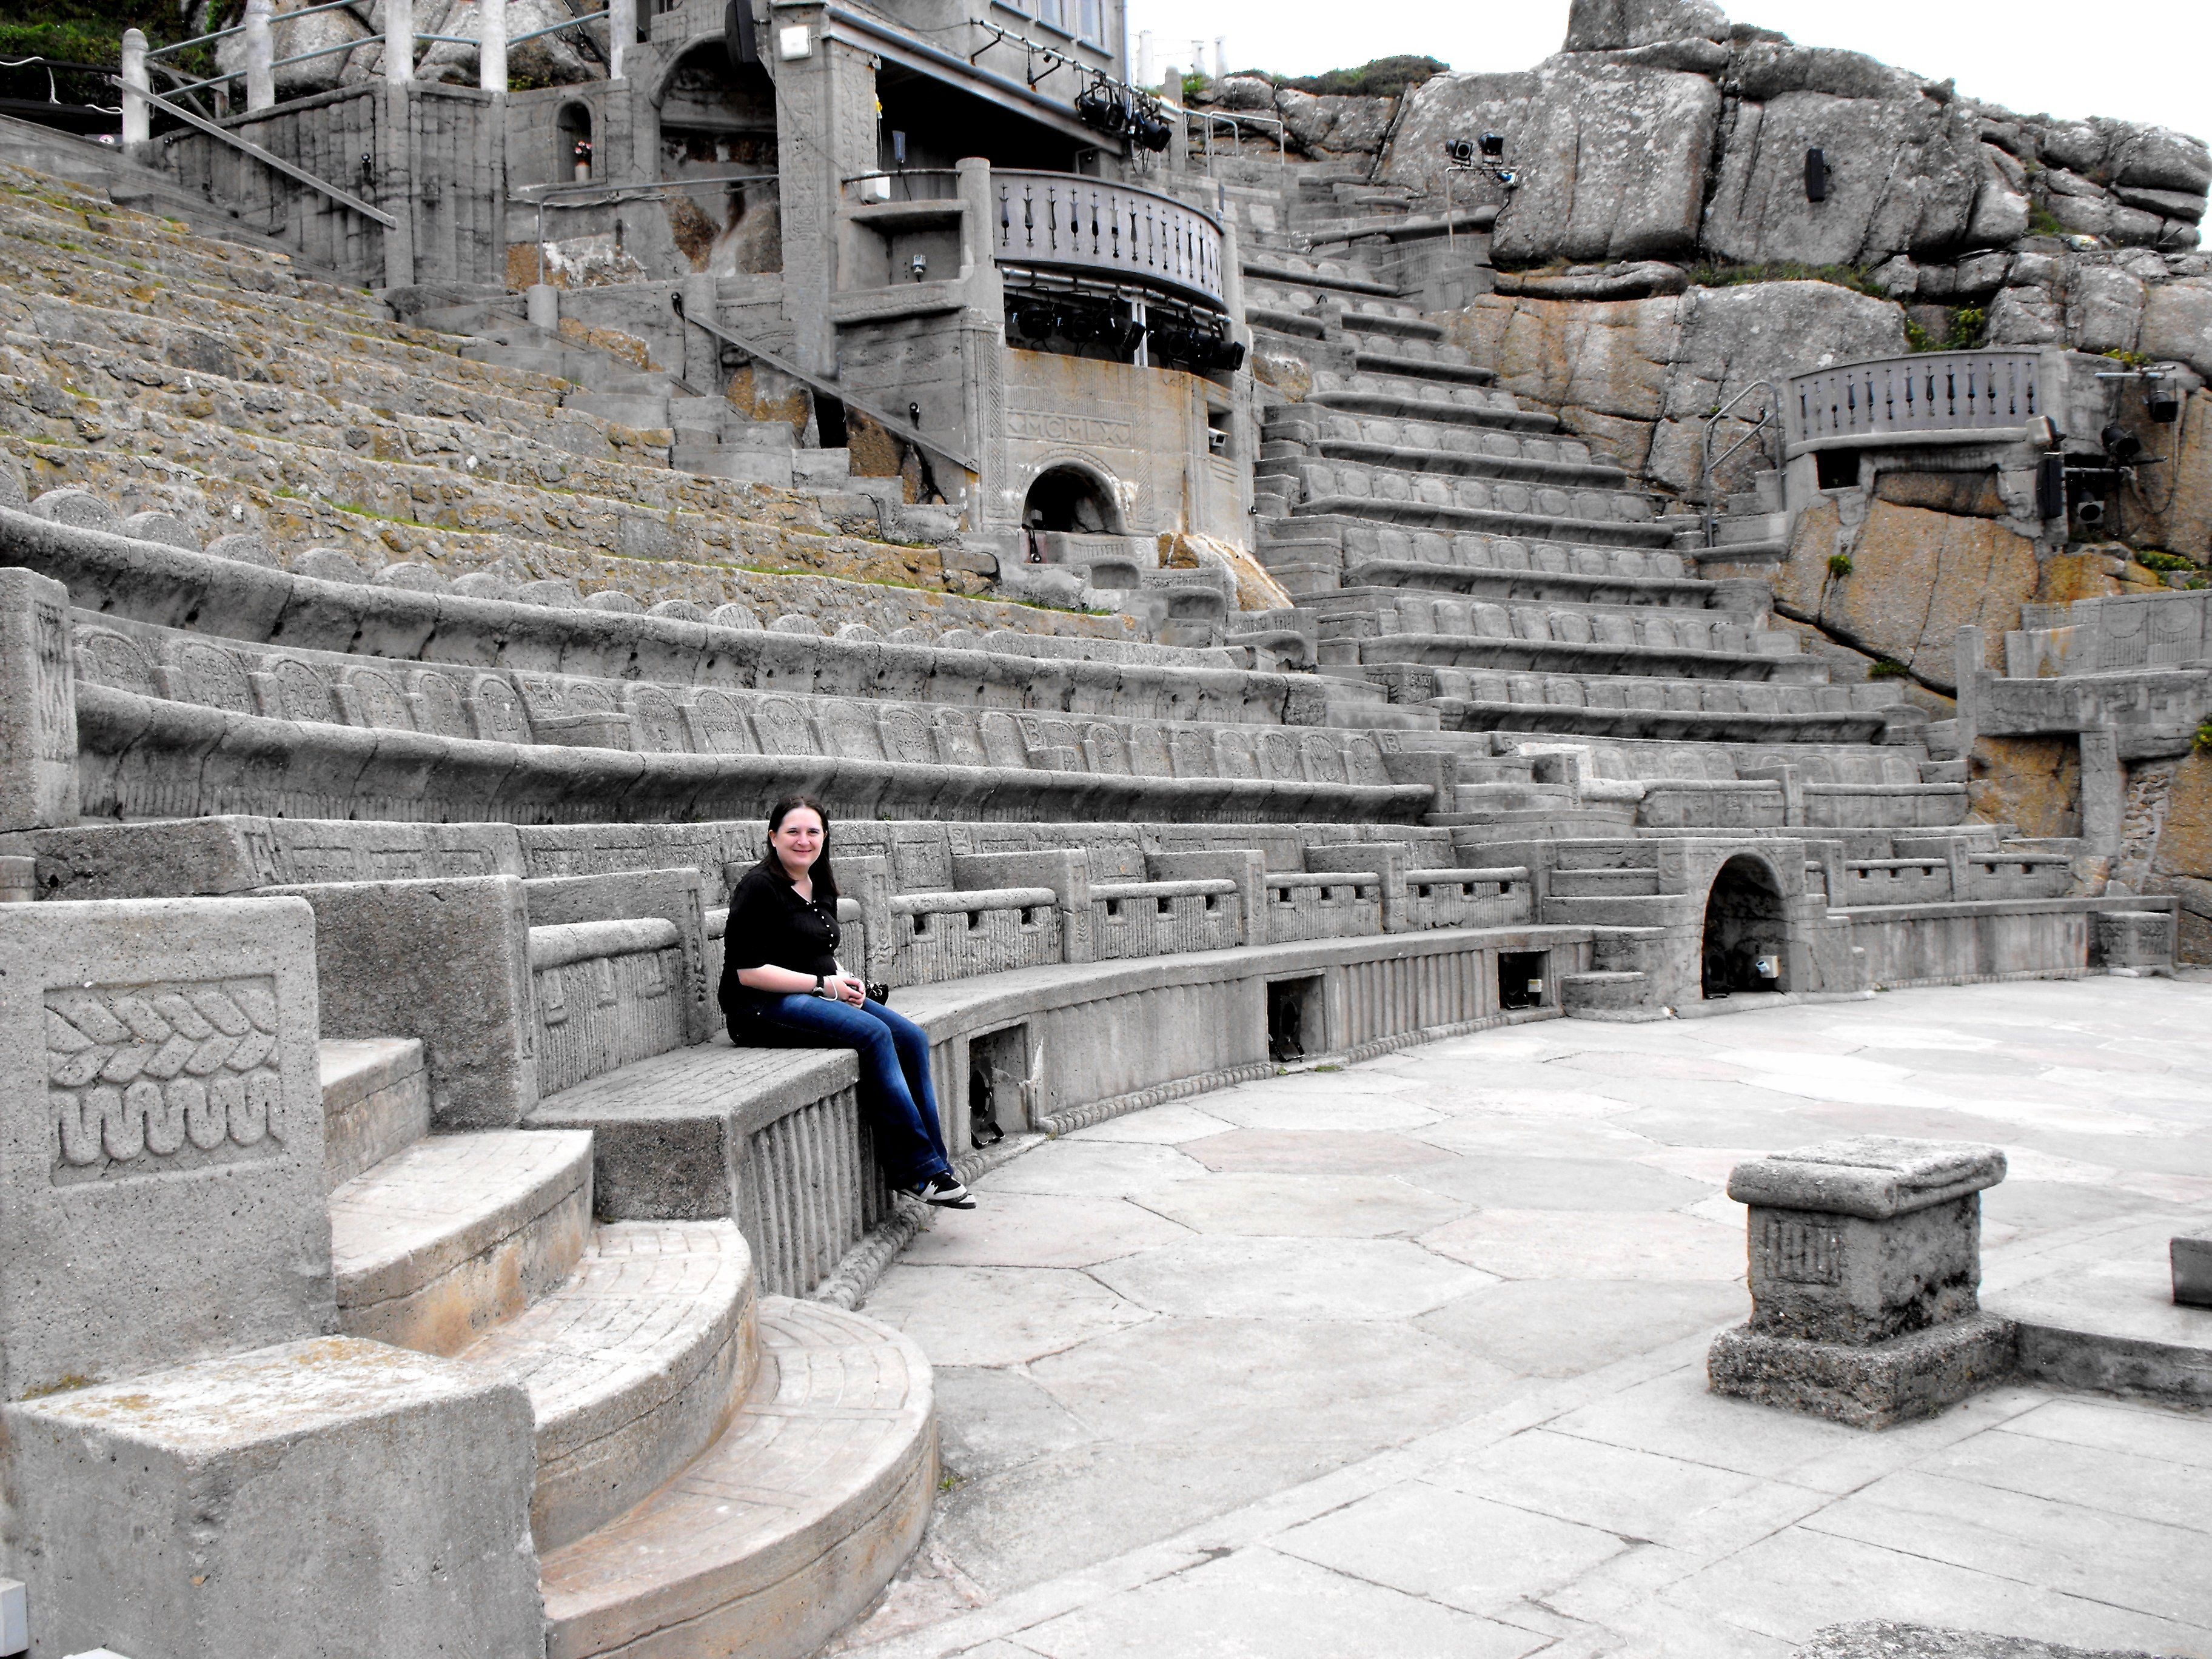 The Minack Theatre is an openair theatre, constructed